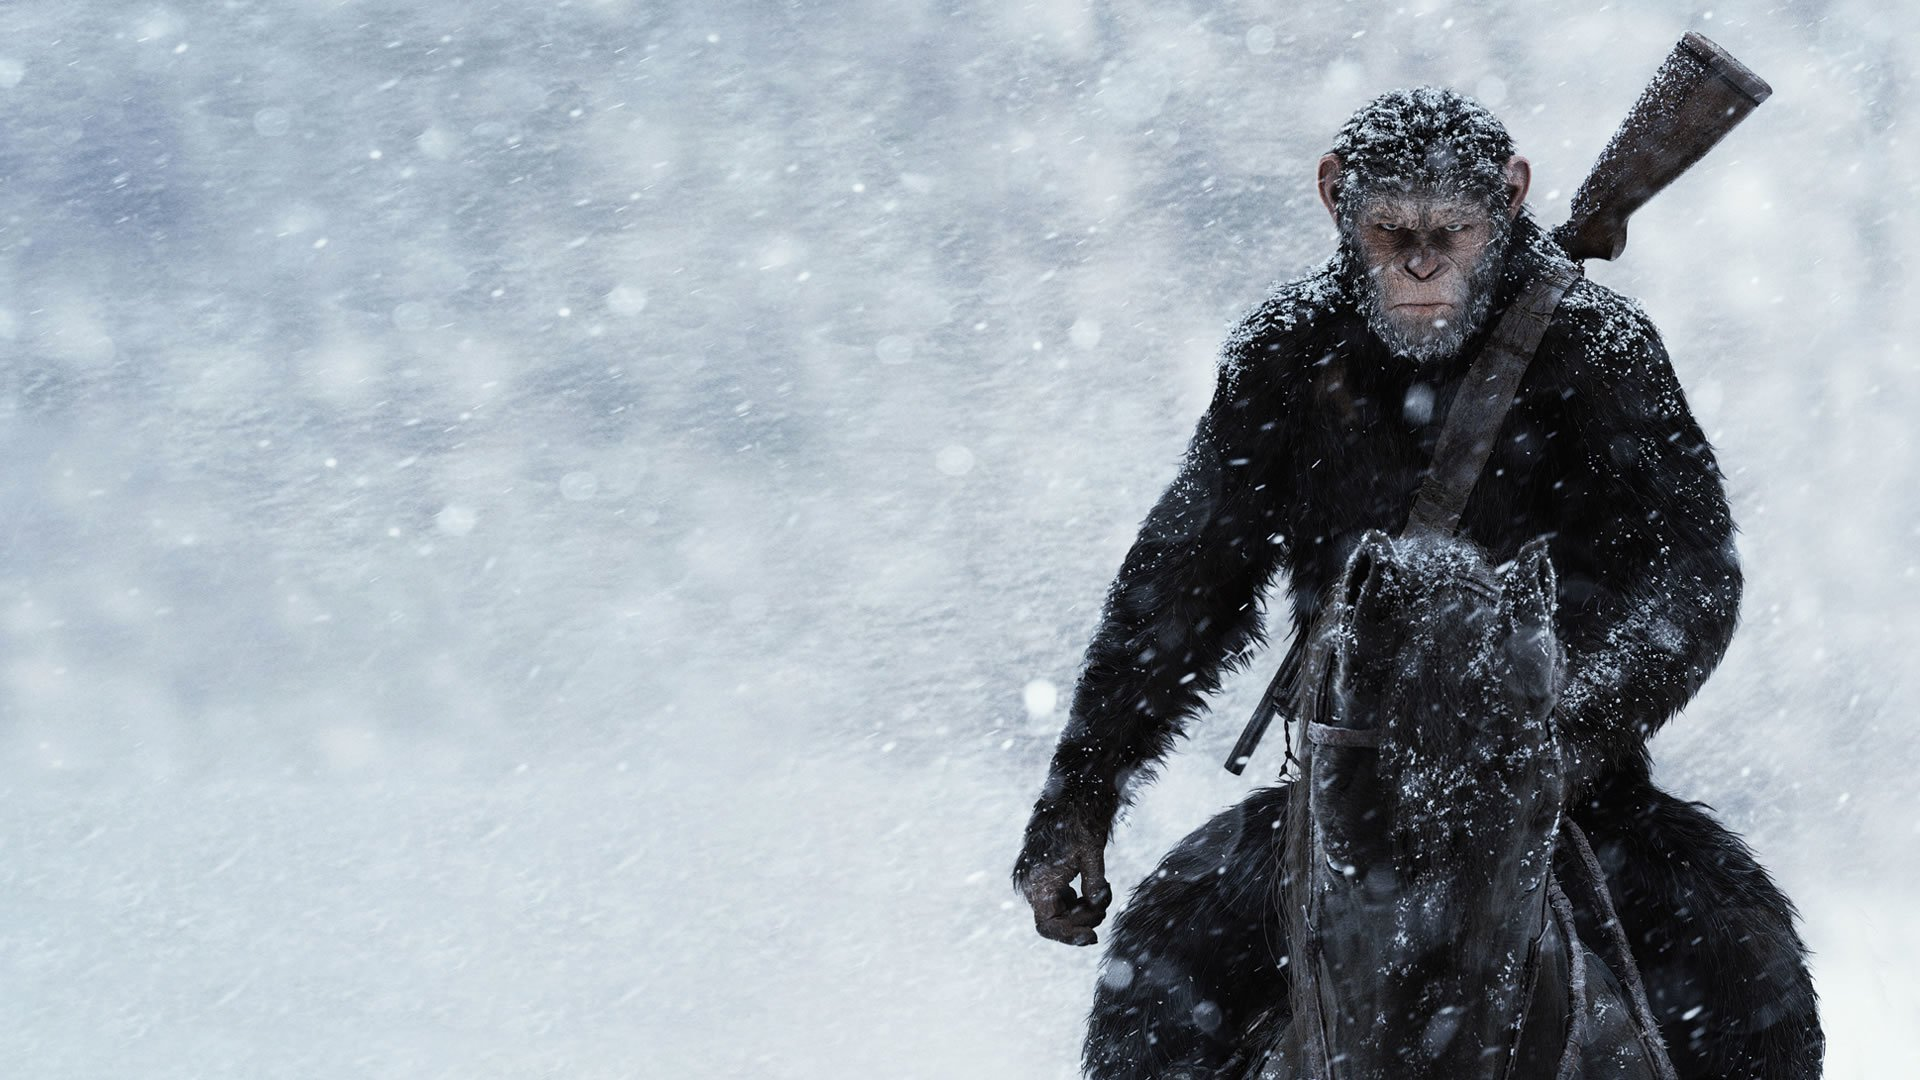 War for the planet of the apes hd wallpaper background - Caesar hd wallpaper ...